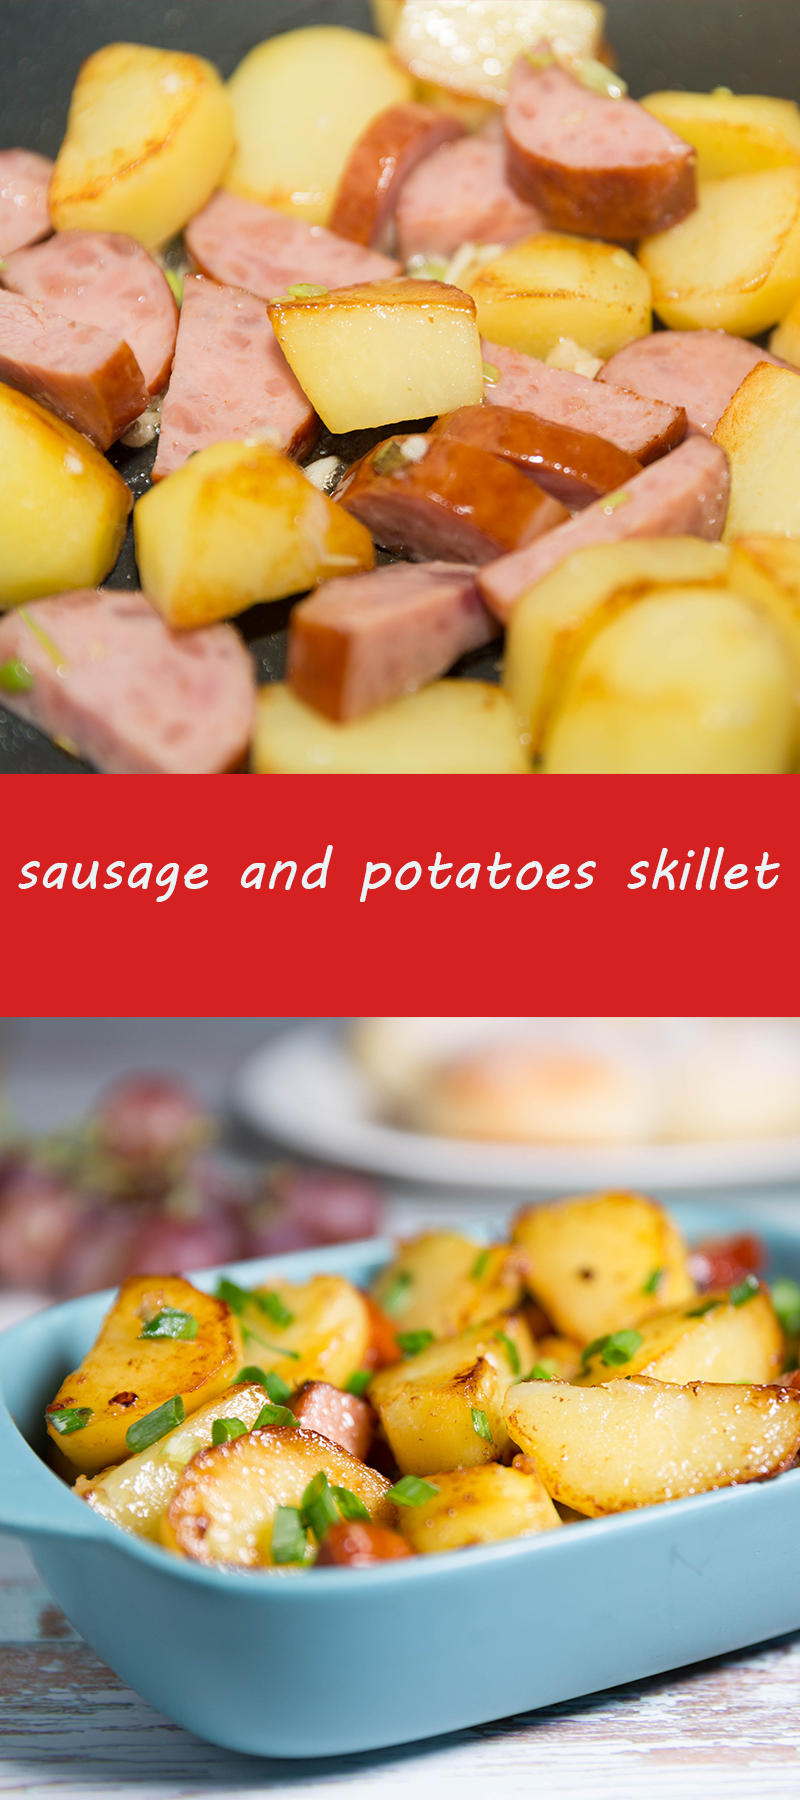 sausage and potatoes skillet